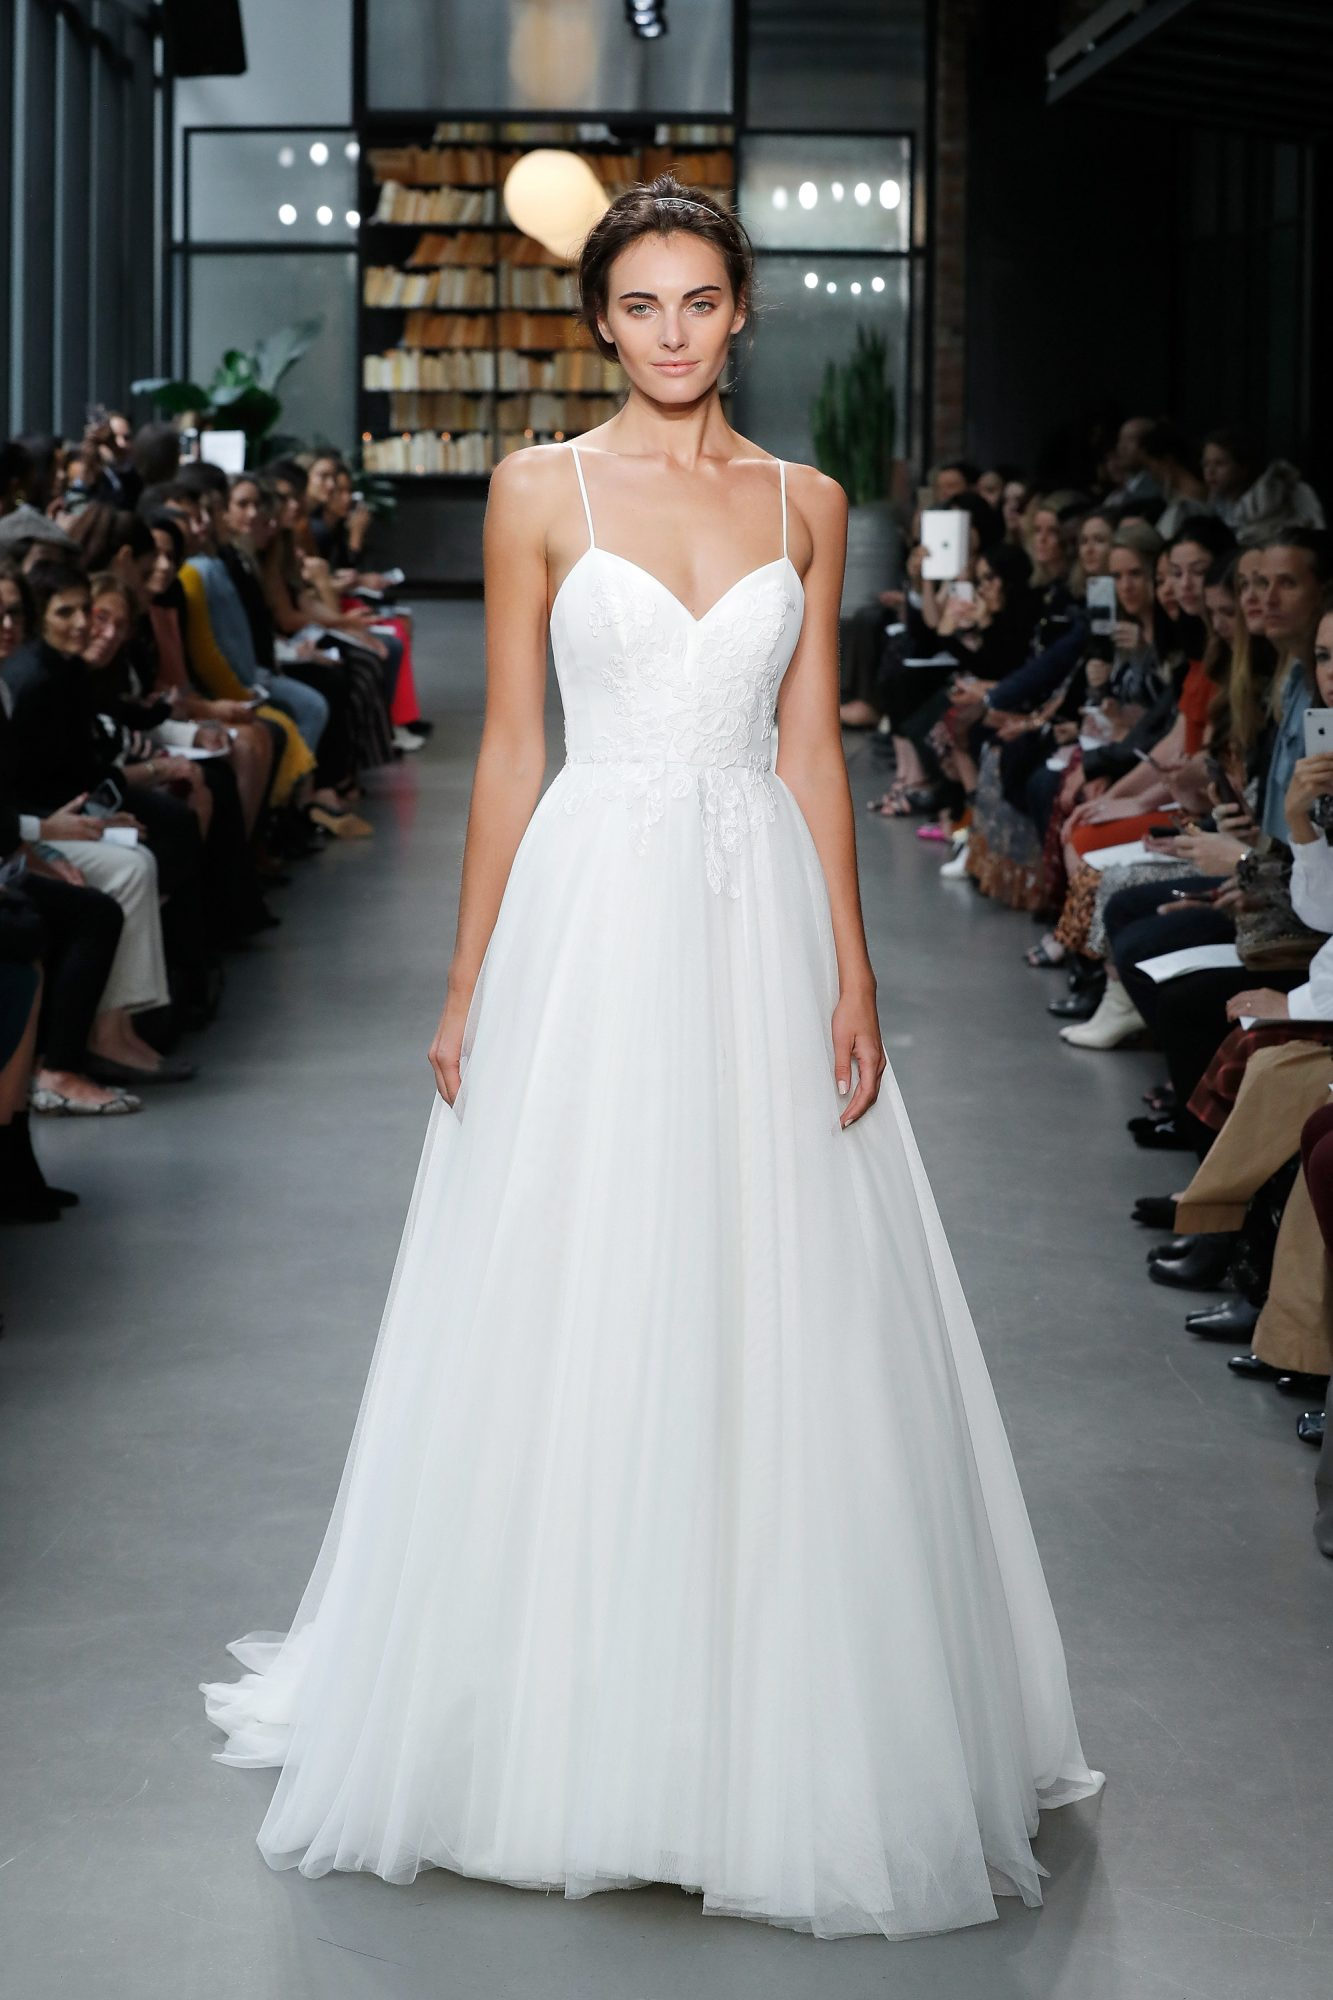 nouvelle amsale wedding dress spaghetti strap sweetheart a-line